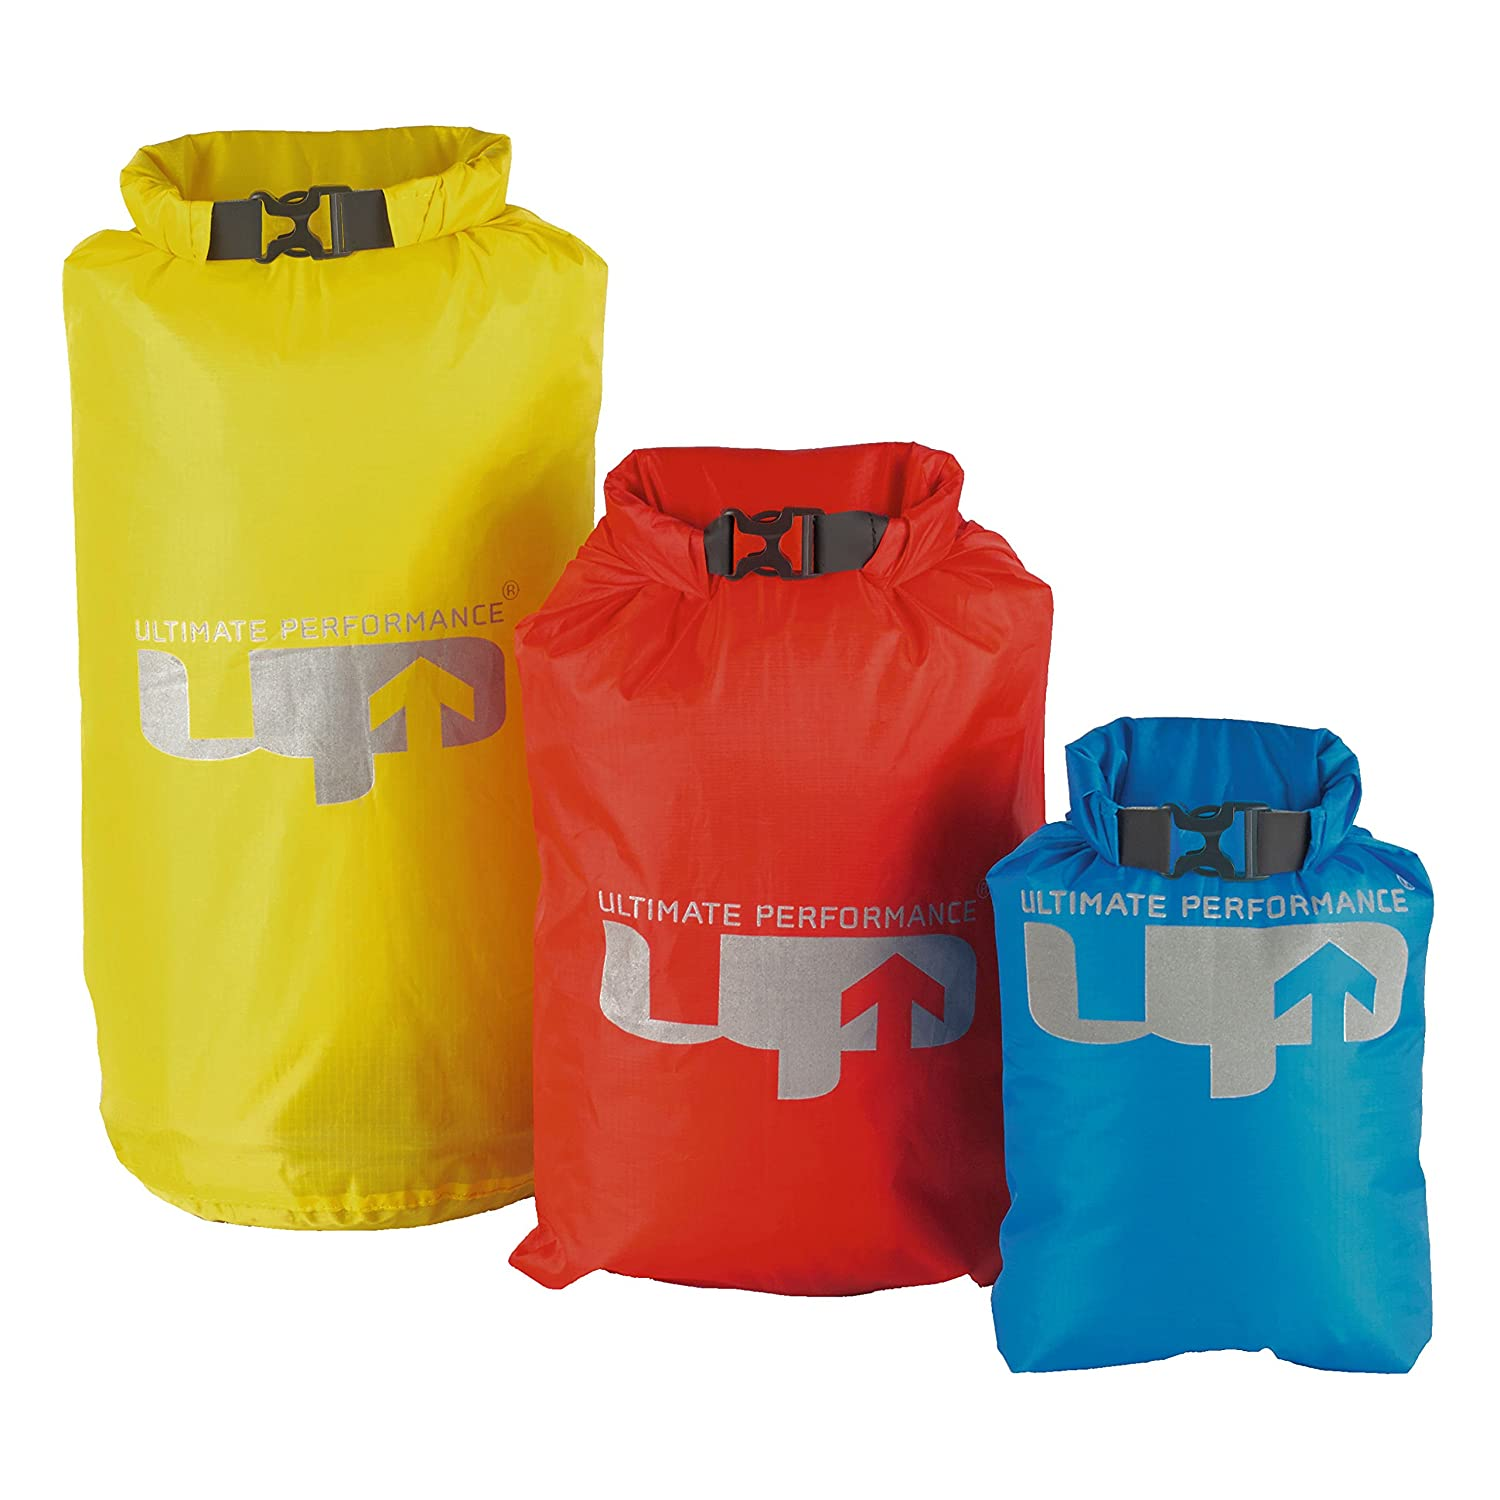 Ultimate Performance Water Resistant Stuff Sacks Outdoor 3 Set Dry Bag Available in Yellow/Red/Blue - 8/4/2 litres